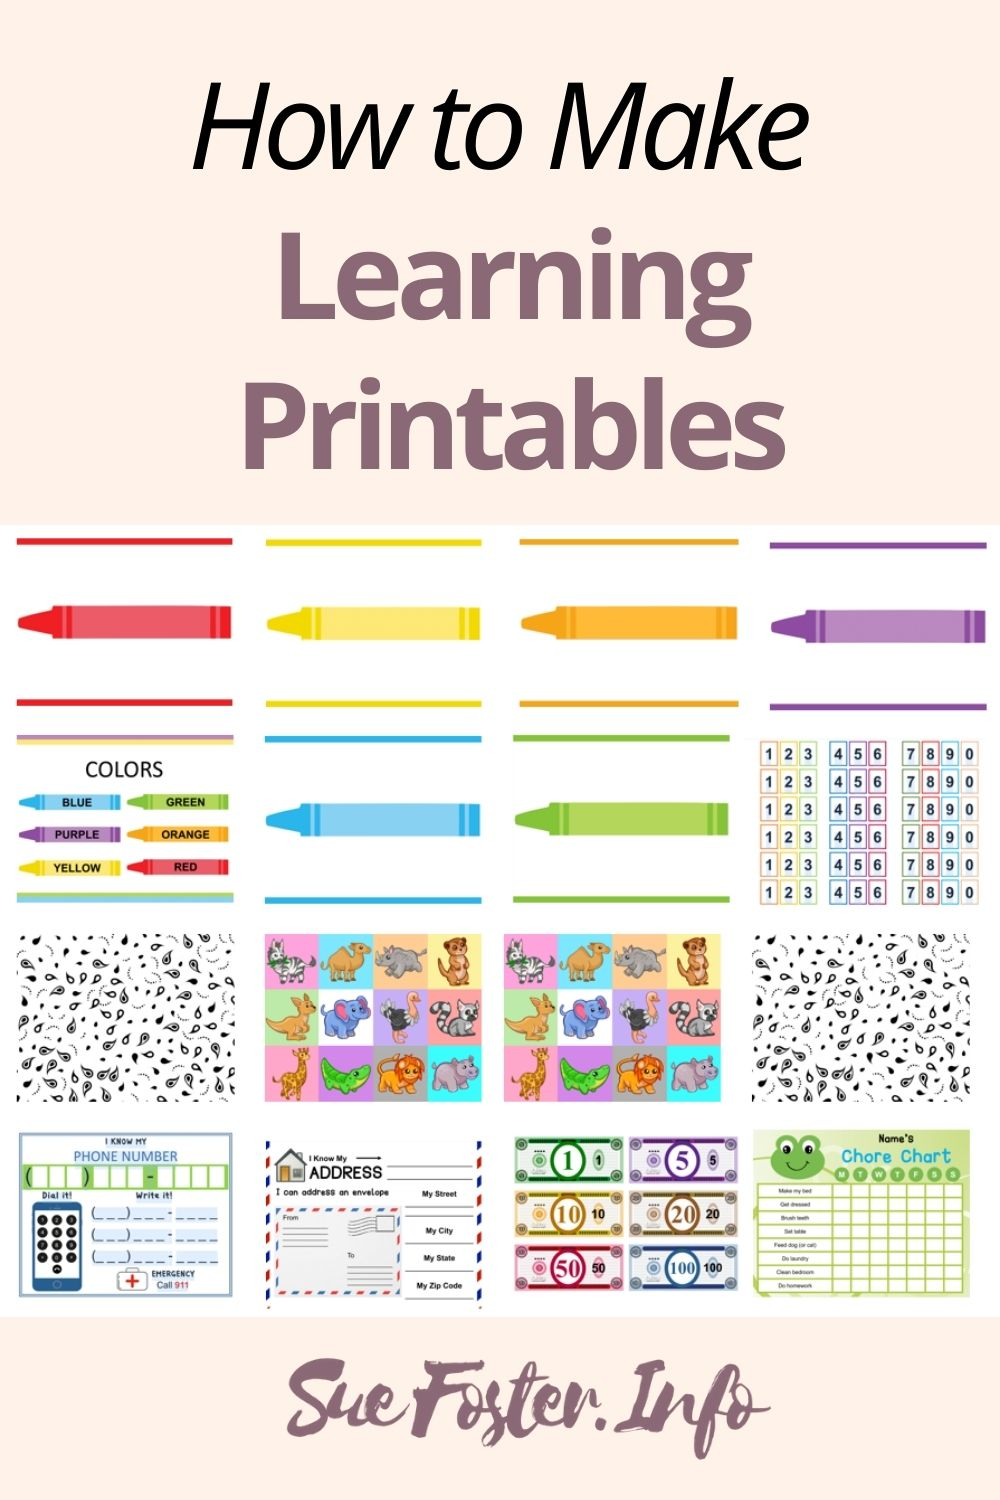 How to Make Learning Printables